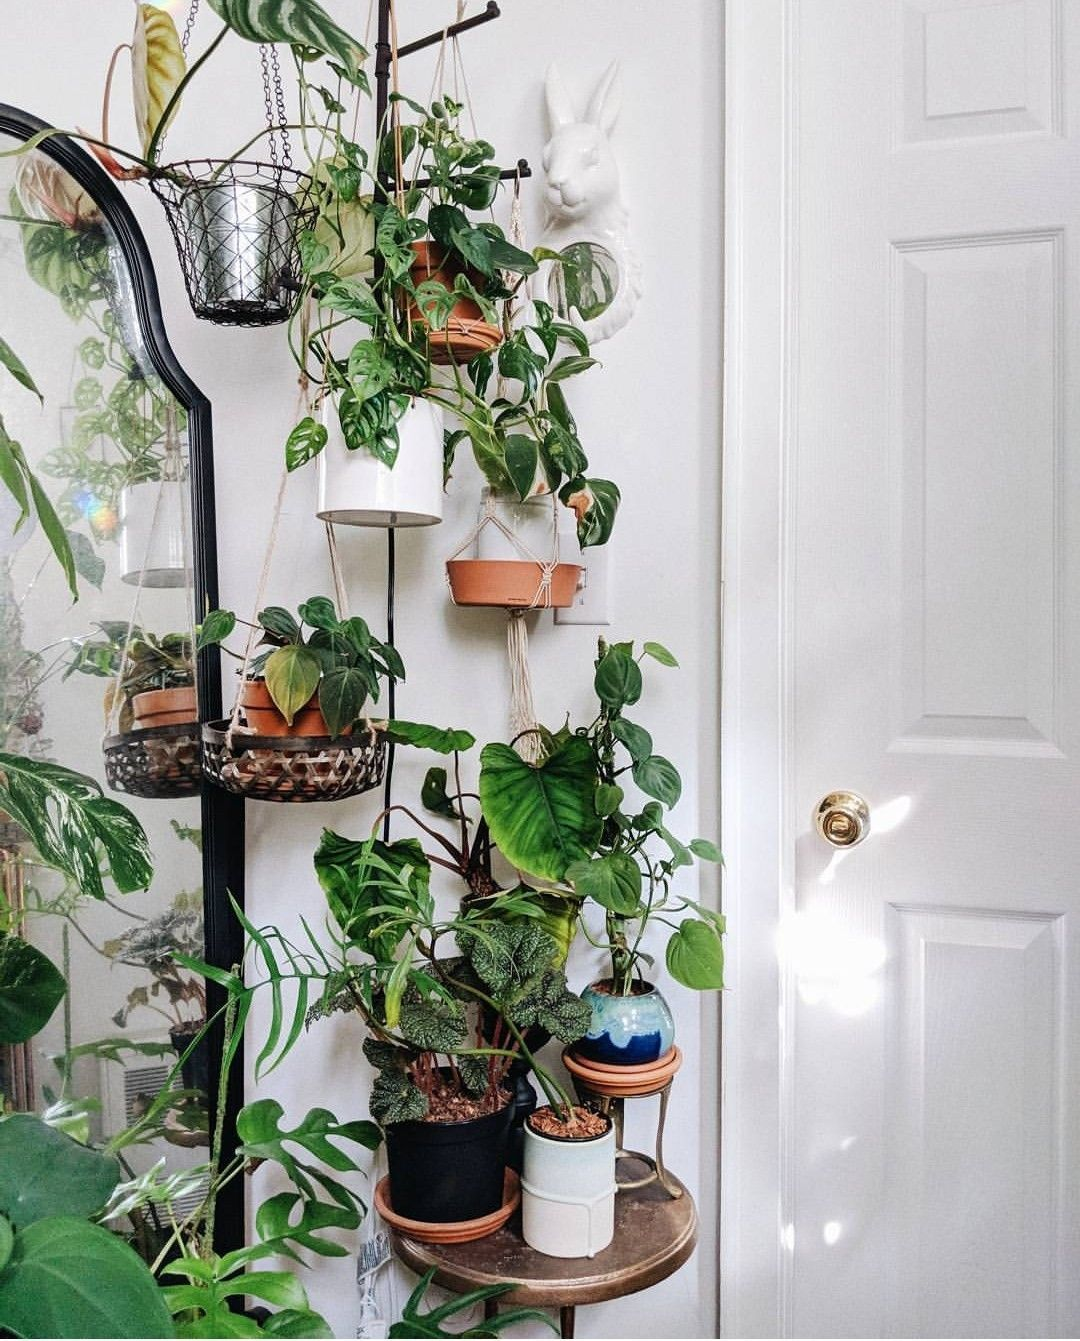 Ou Acheter Un Mur Vegetal Interieur plants - fleurs - plantes - jungle - houseplants - plantes